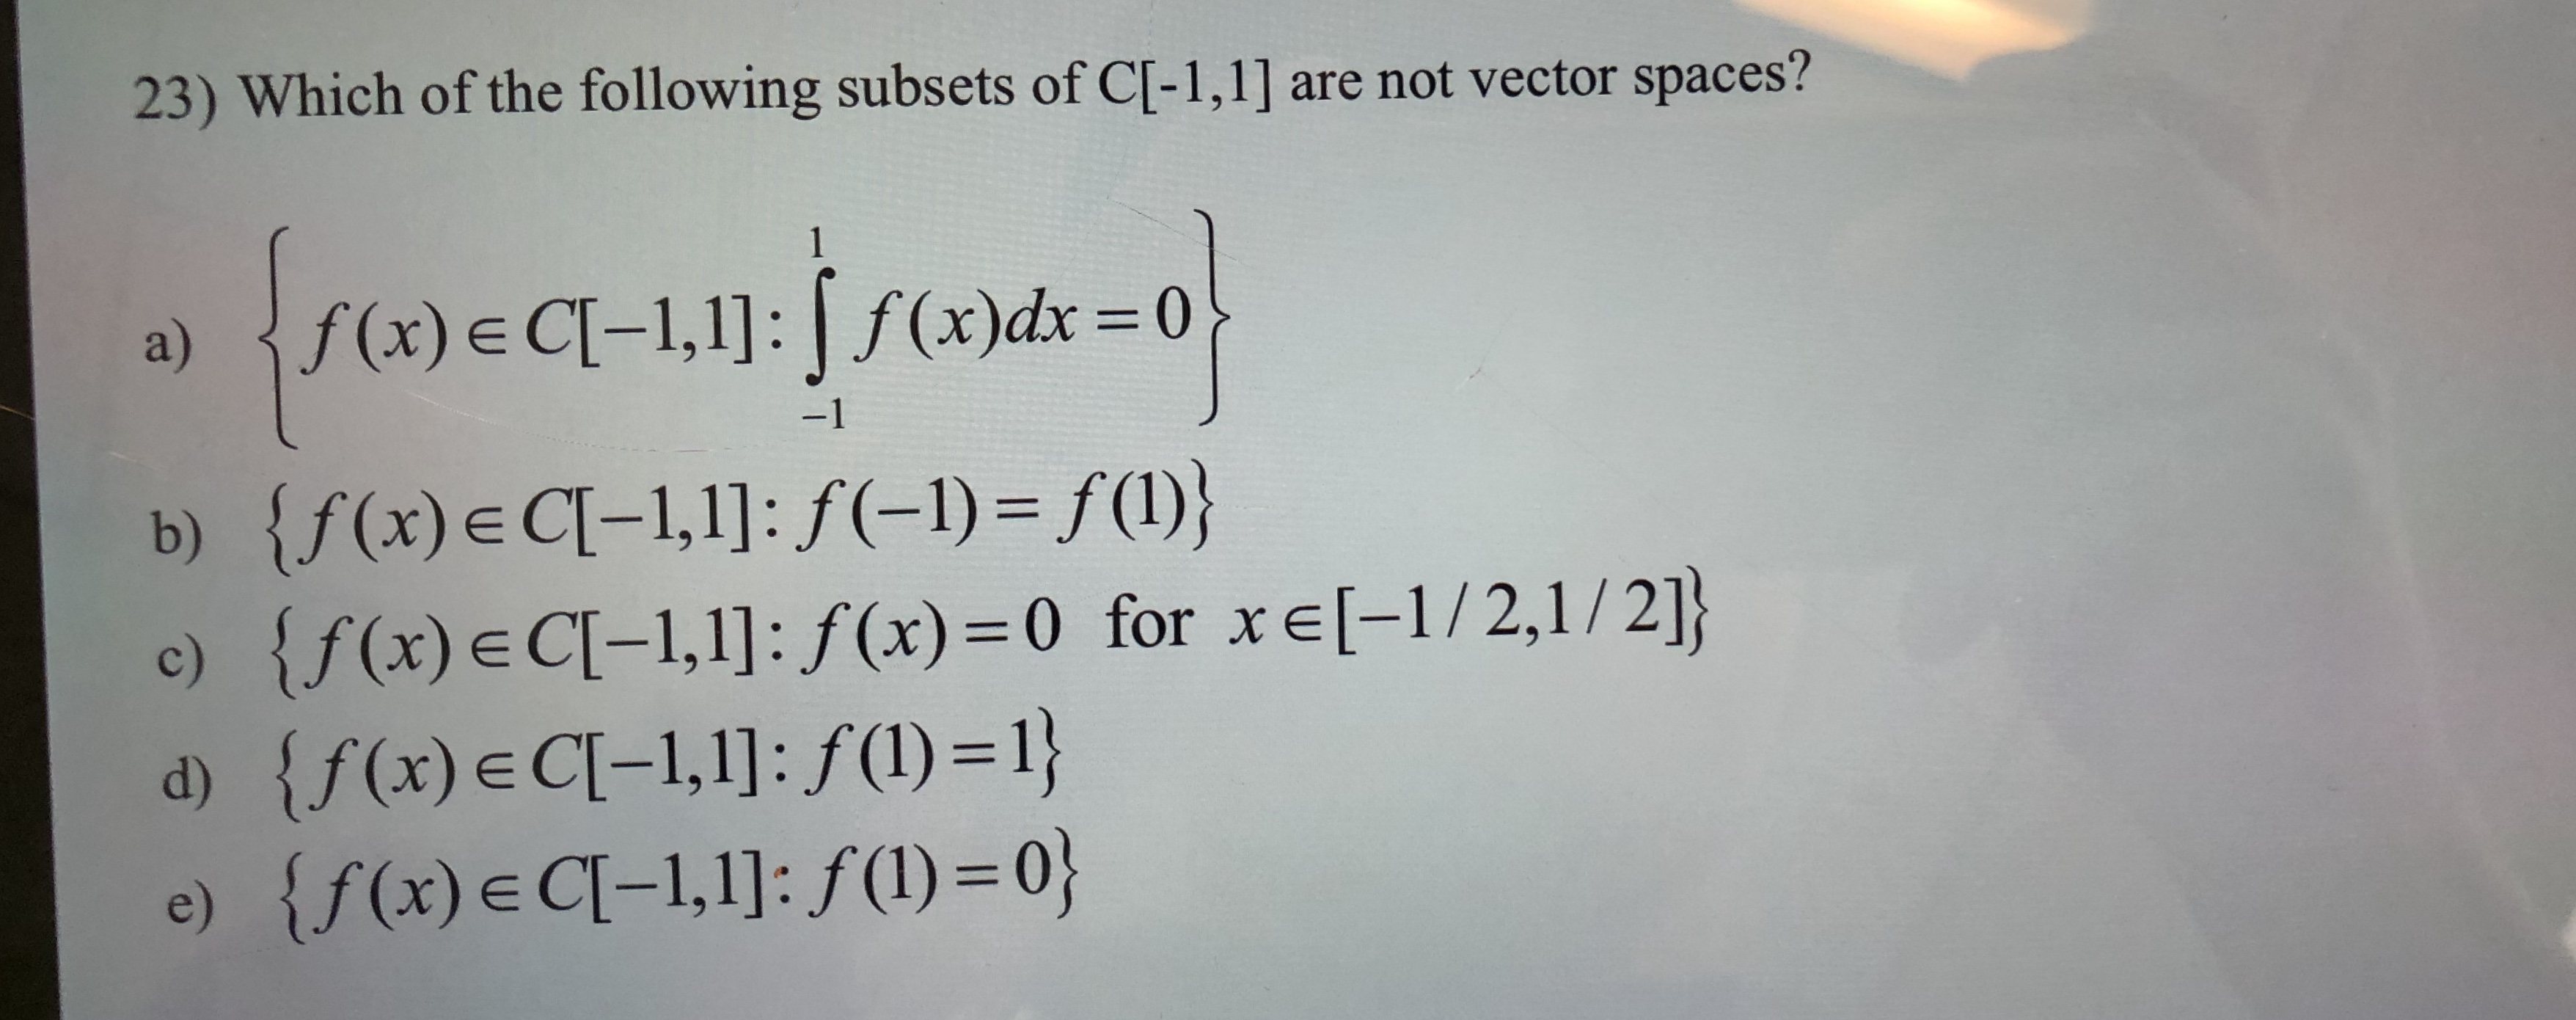 are not vector spaces? 23) Which of the following subsets of C[-1,1] 1 (x)dx 0 f(x) E CI-1,1]: a) -1 {f(x)e C-1,1]: f(-1) = f(l)} {f (x) E C[-1,1]: f(x) 0 for xe[-1/2,1 / 2]} {f(x) e Cl-1,1]: f (1) = 1} e) {f(x)e CI-1,1]: f(l) = 0} b) c) d)